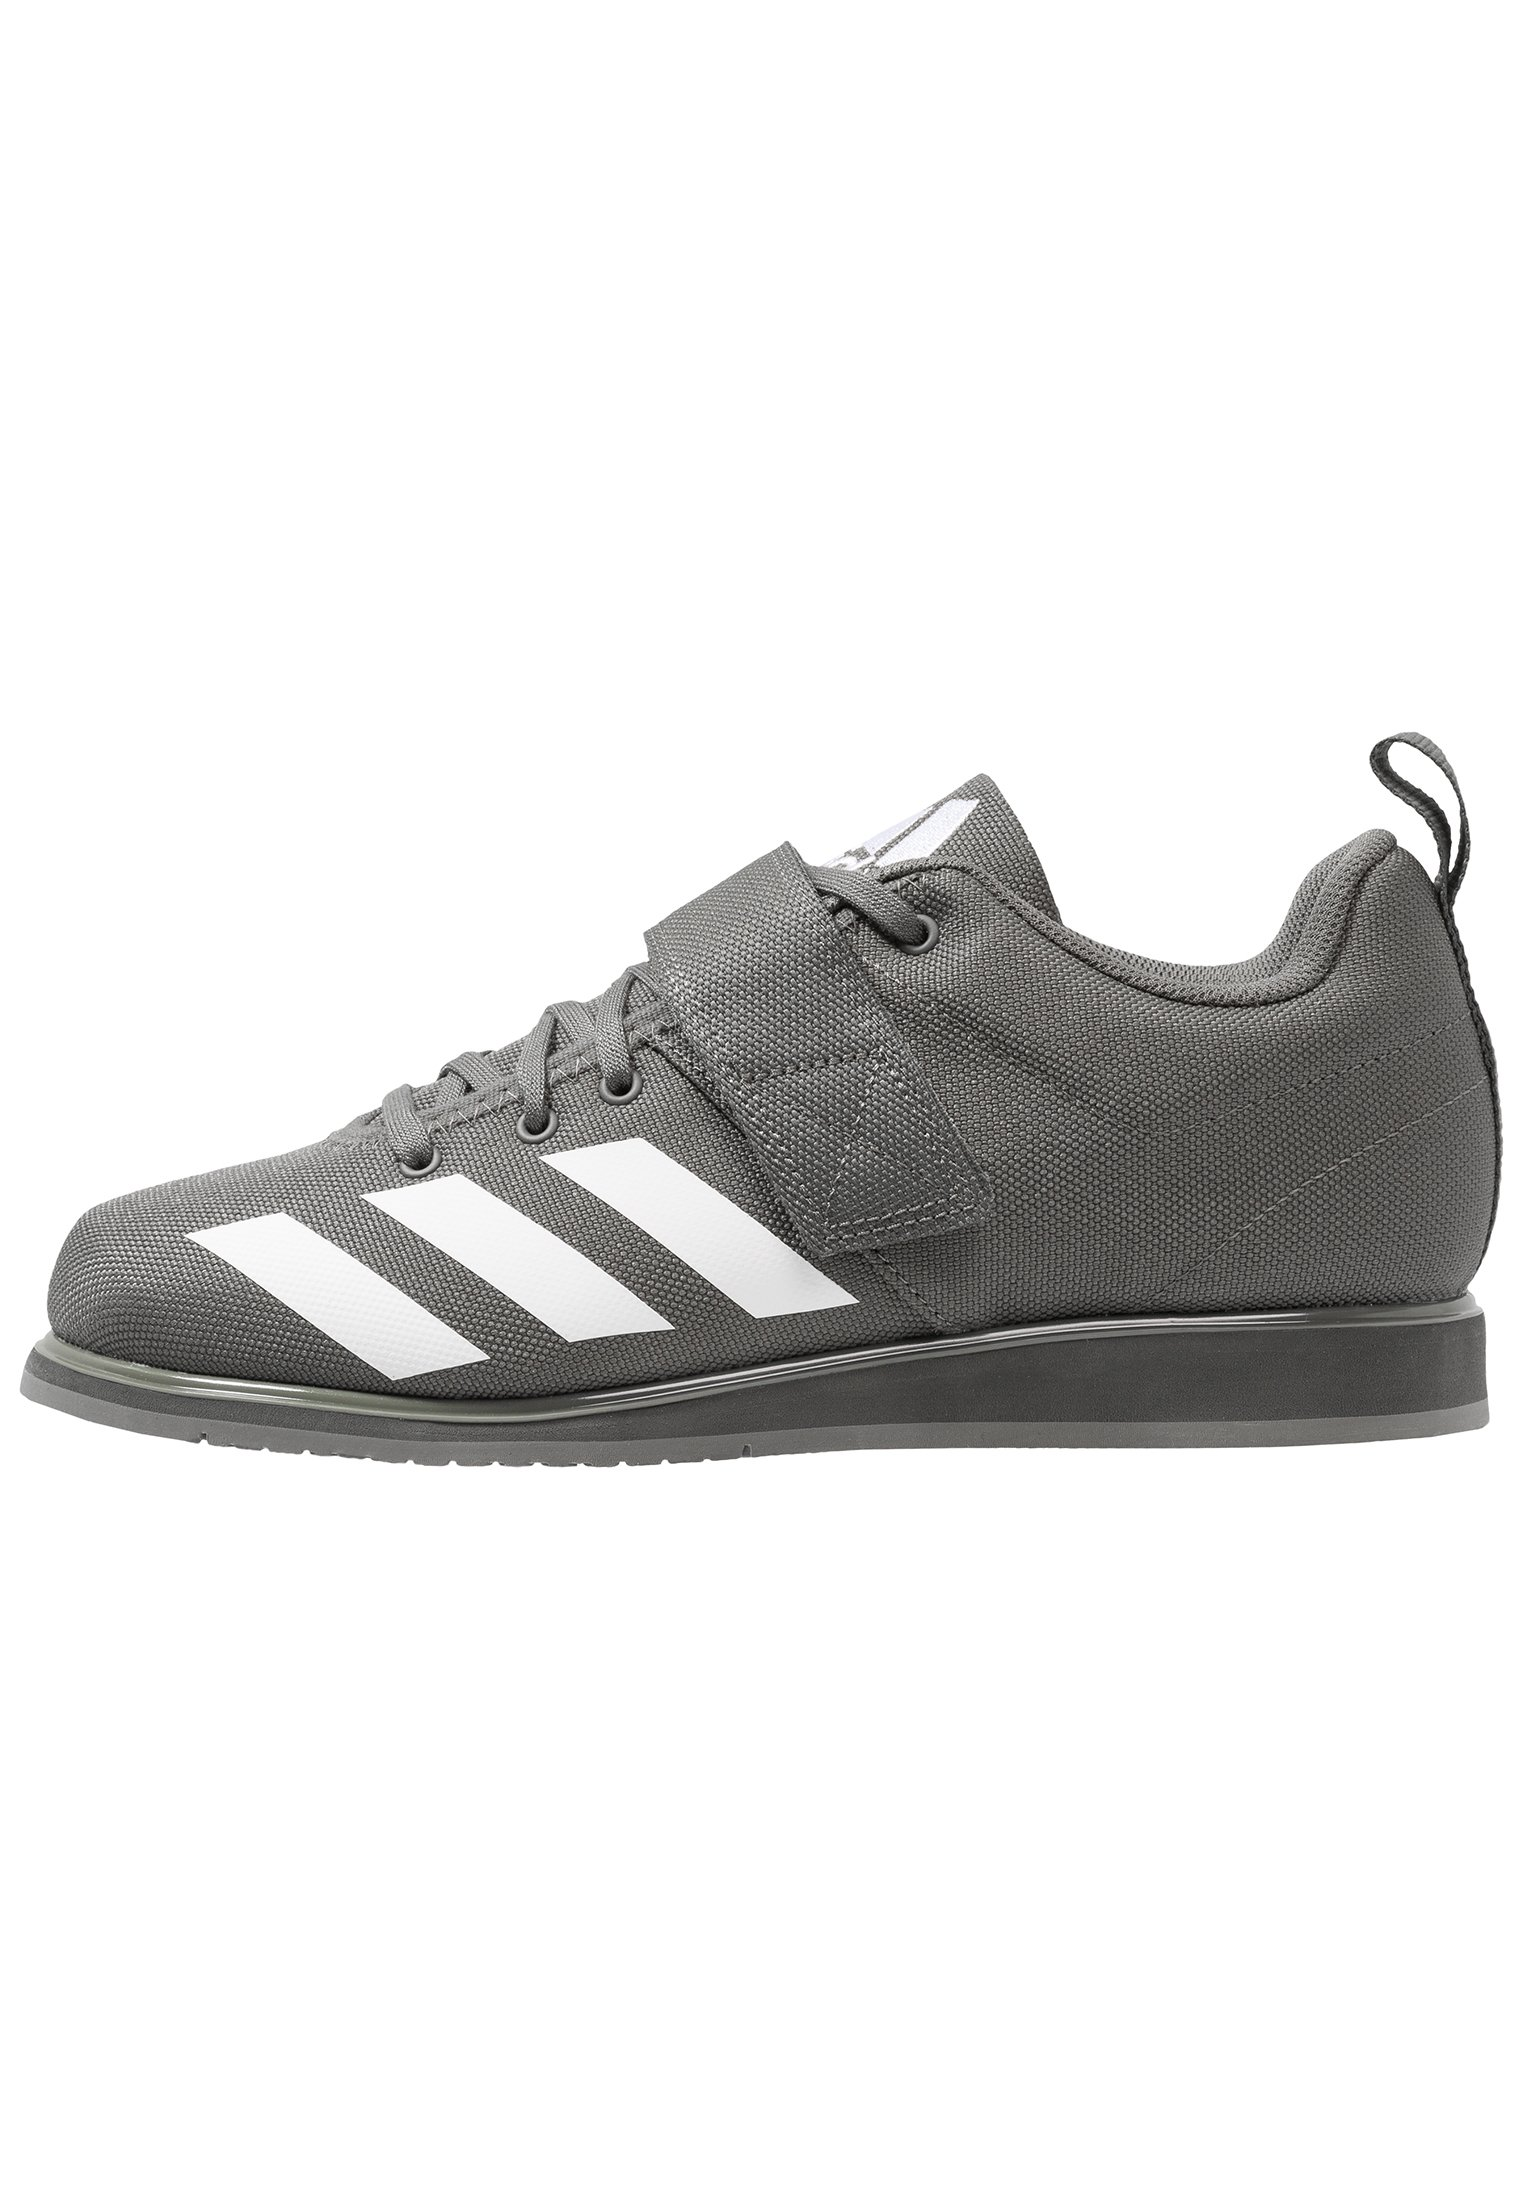 chaussure infirmiere adidas